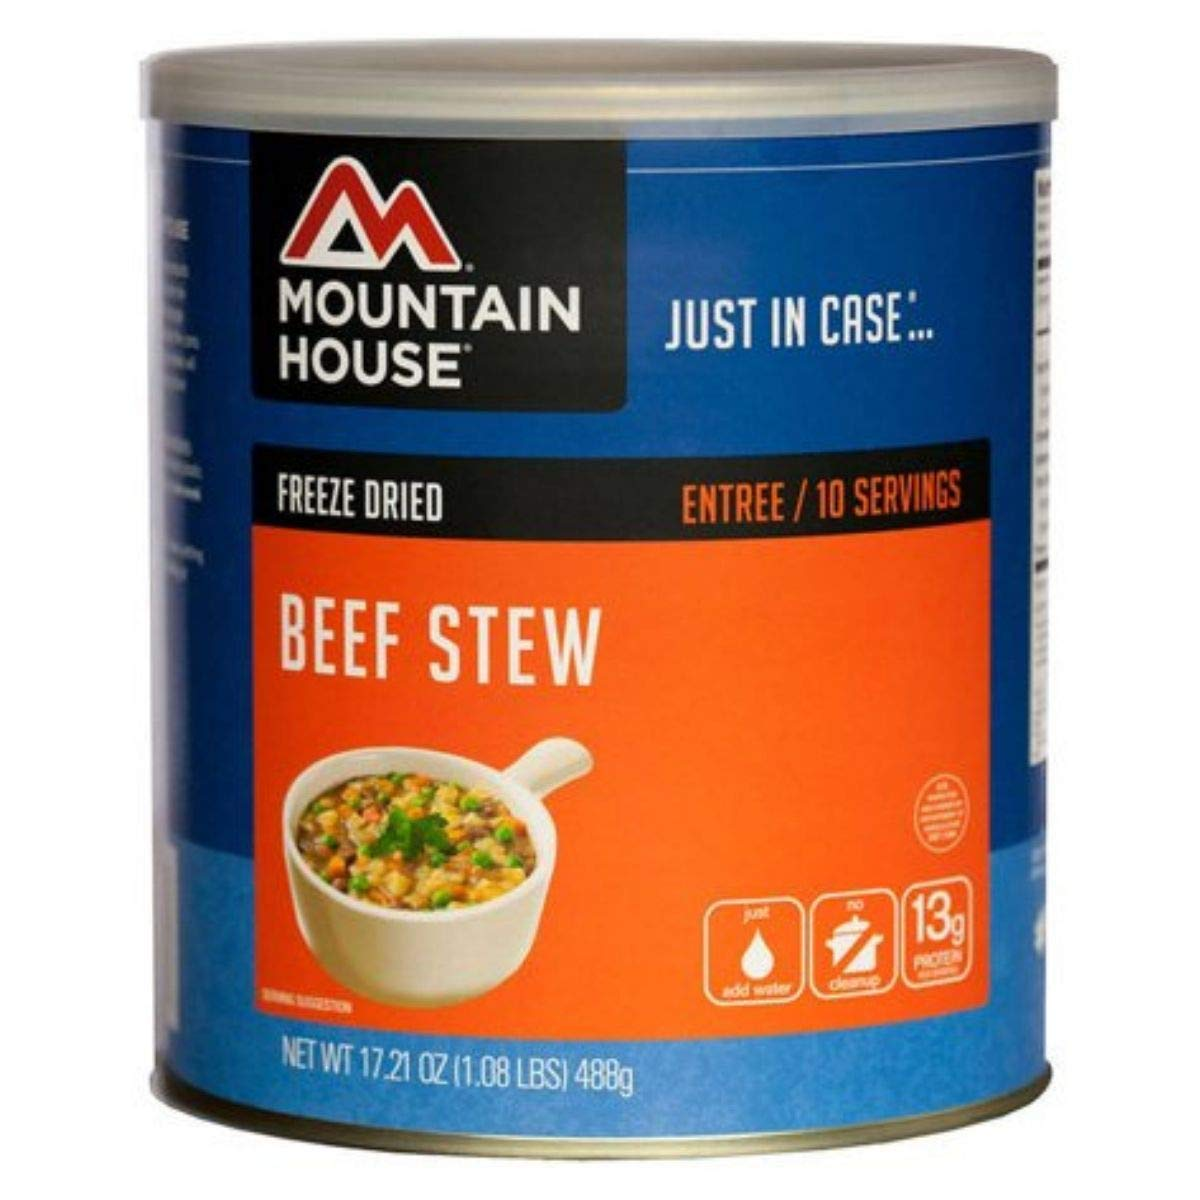 Mountain House Freeze Dried Beef Stew Can (Pack of 2) by Mountain House